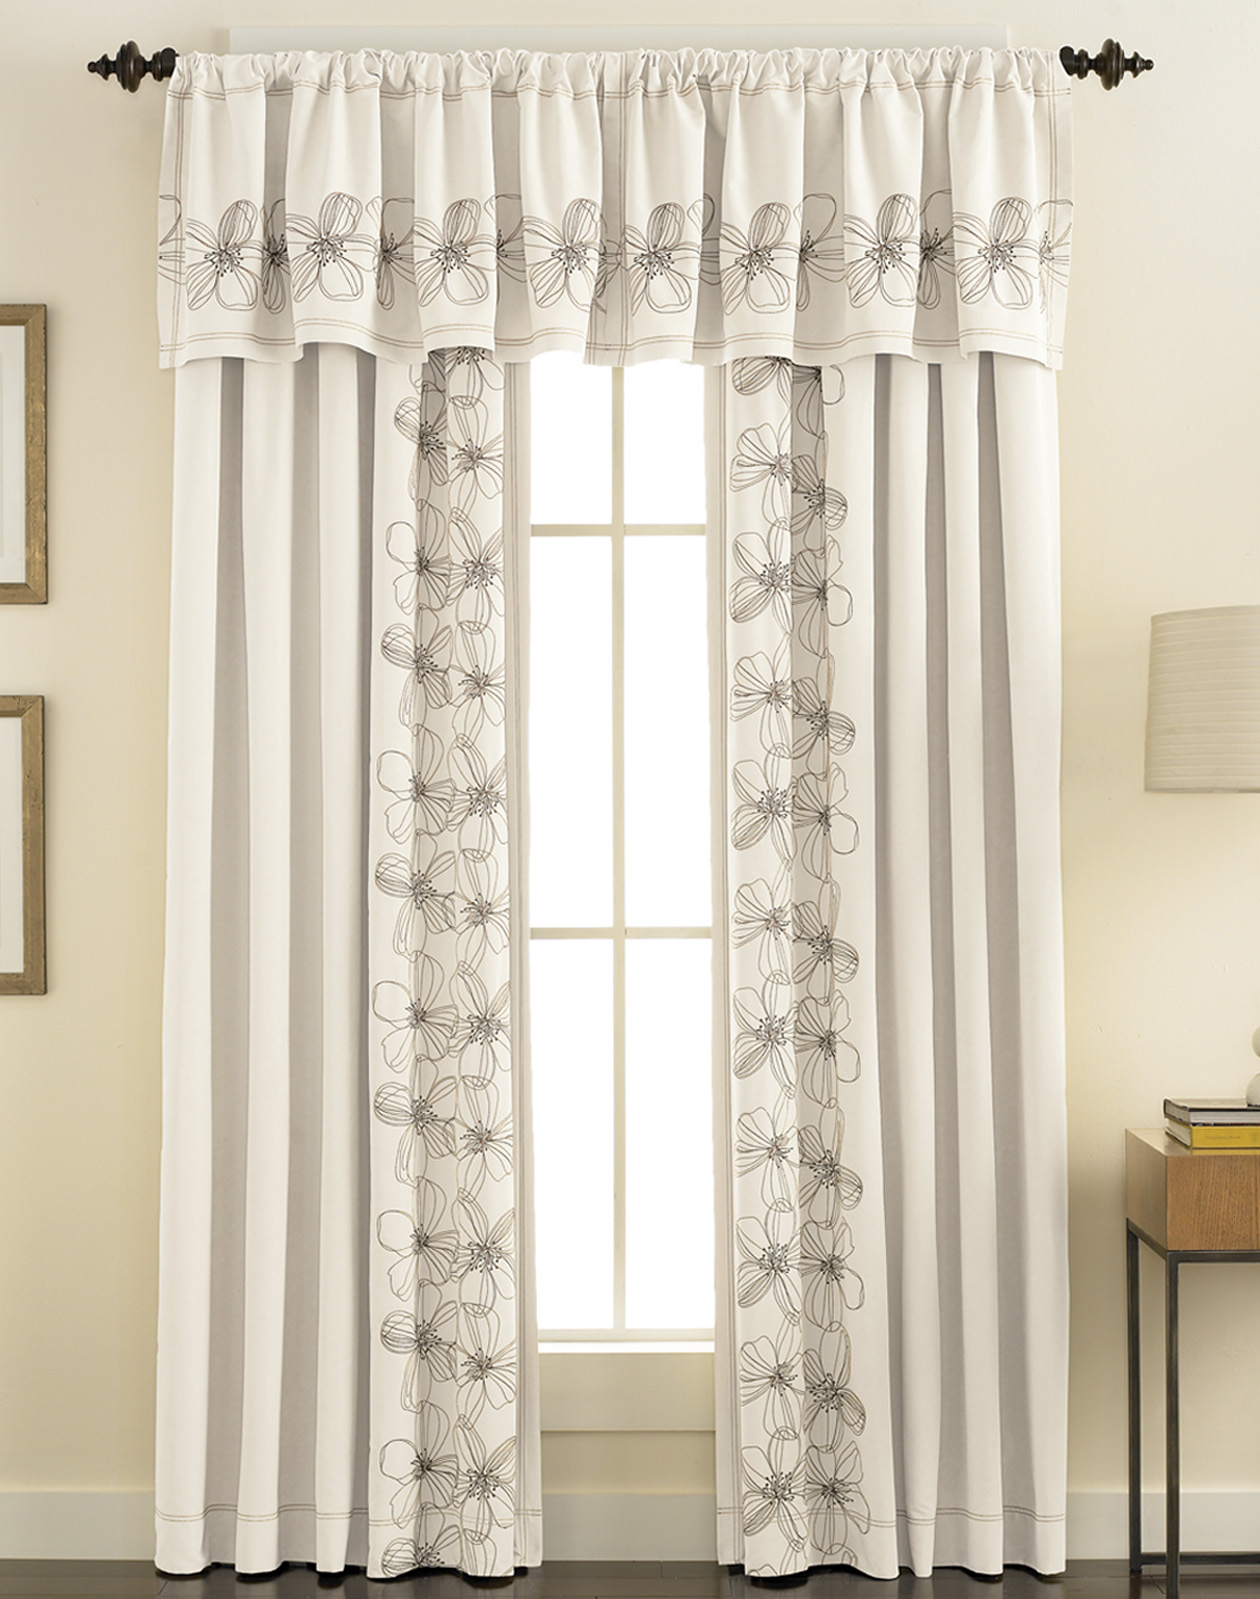 Windows Drapes Window Drapes Drapes